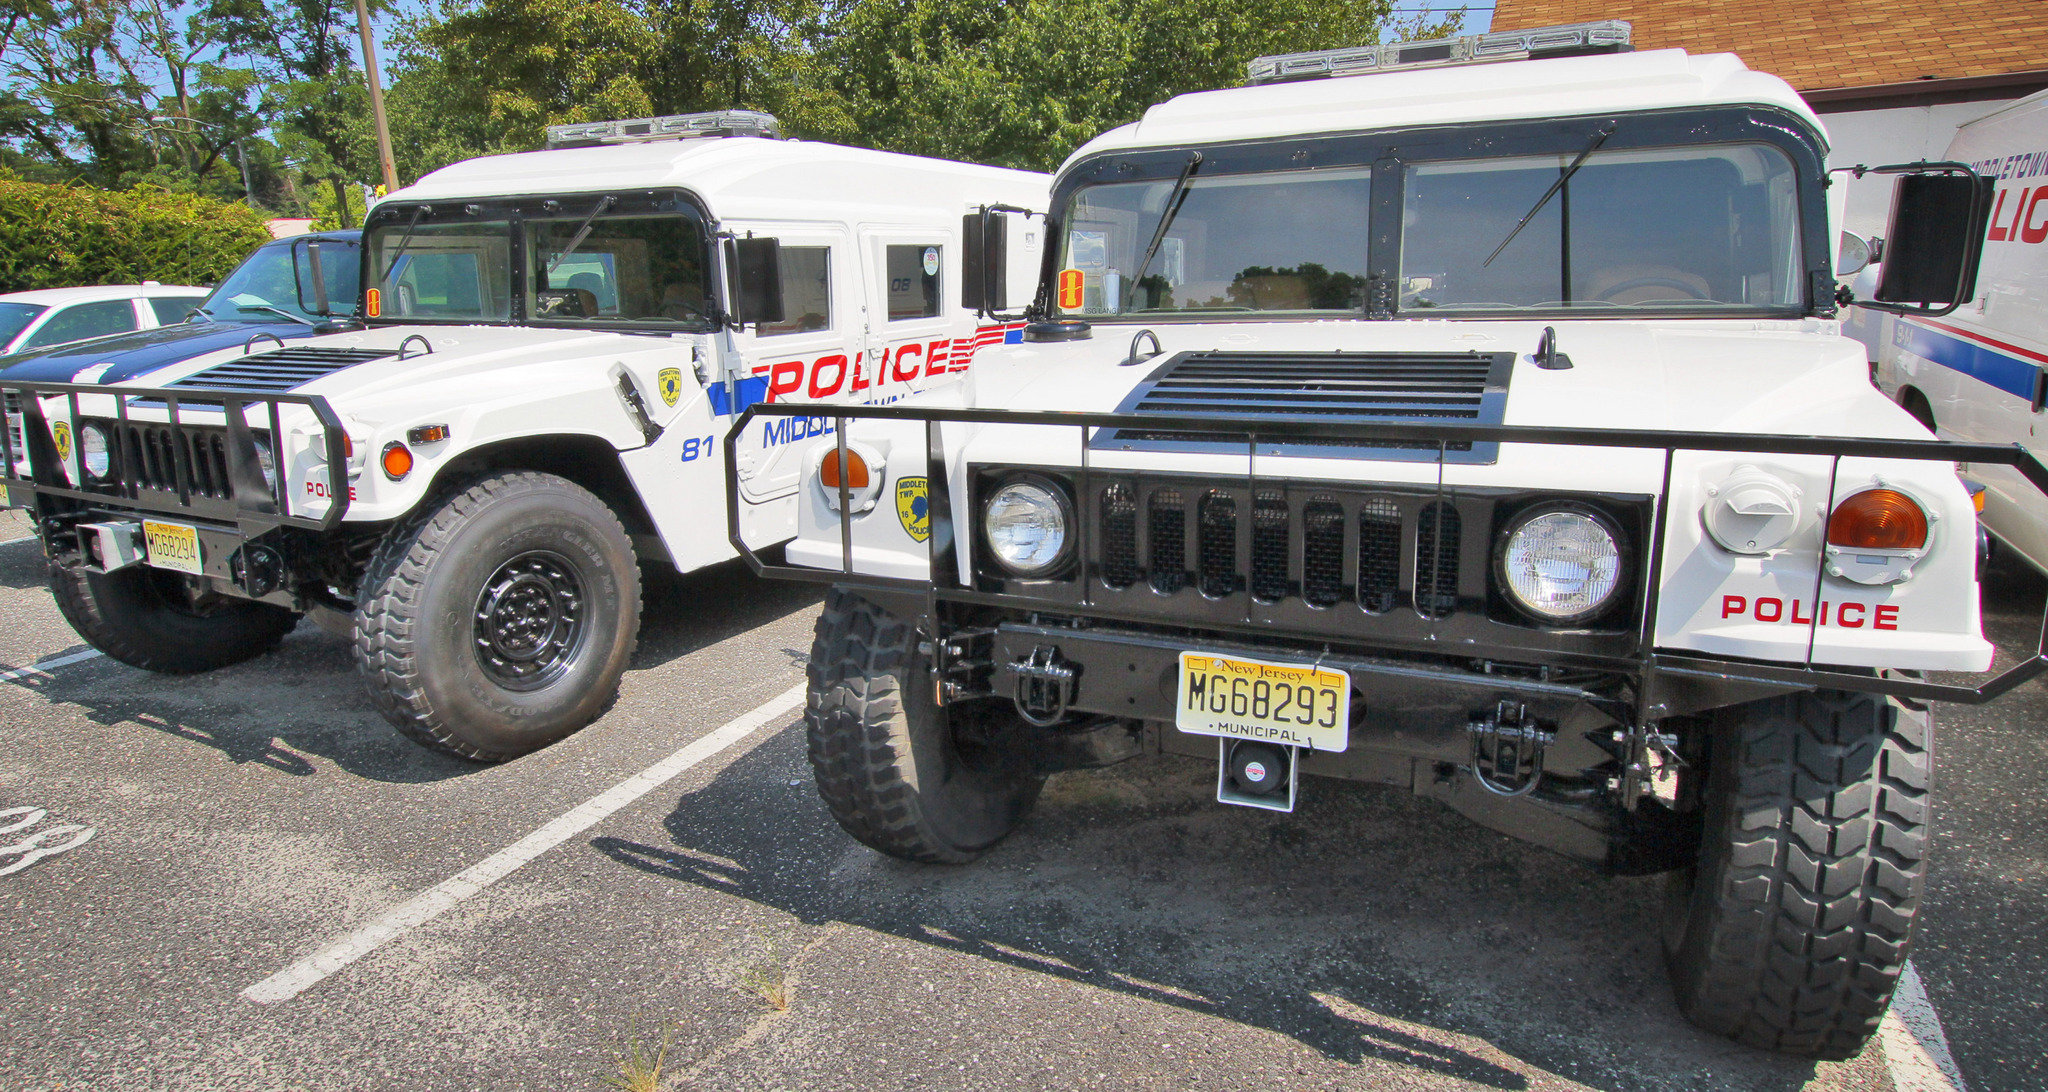 Police acquisition of surplus military gear tar ed by